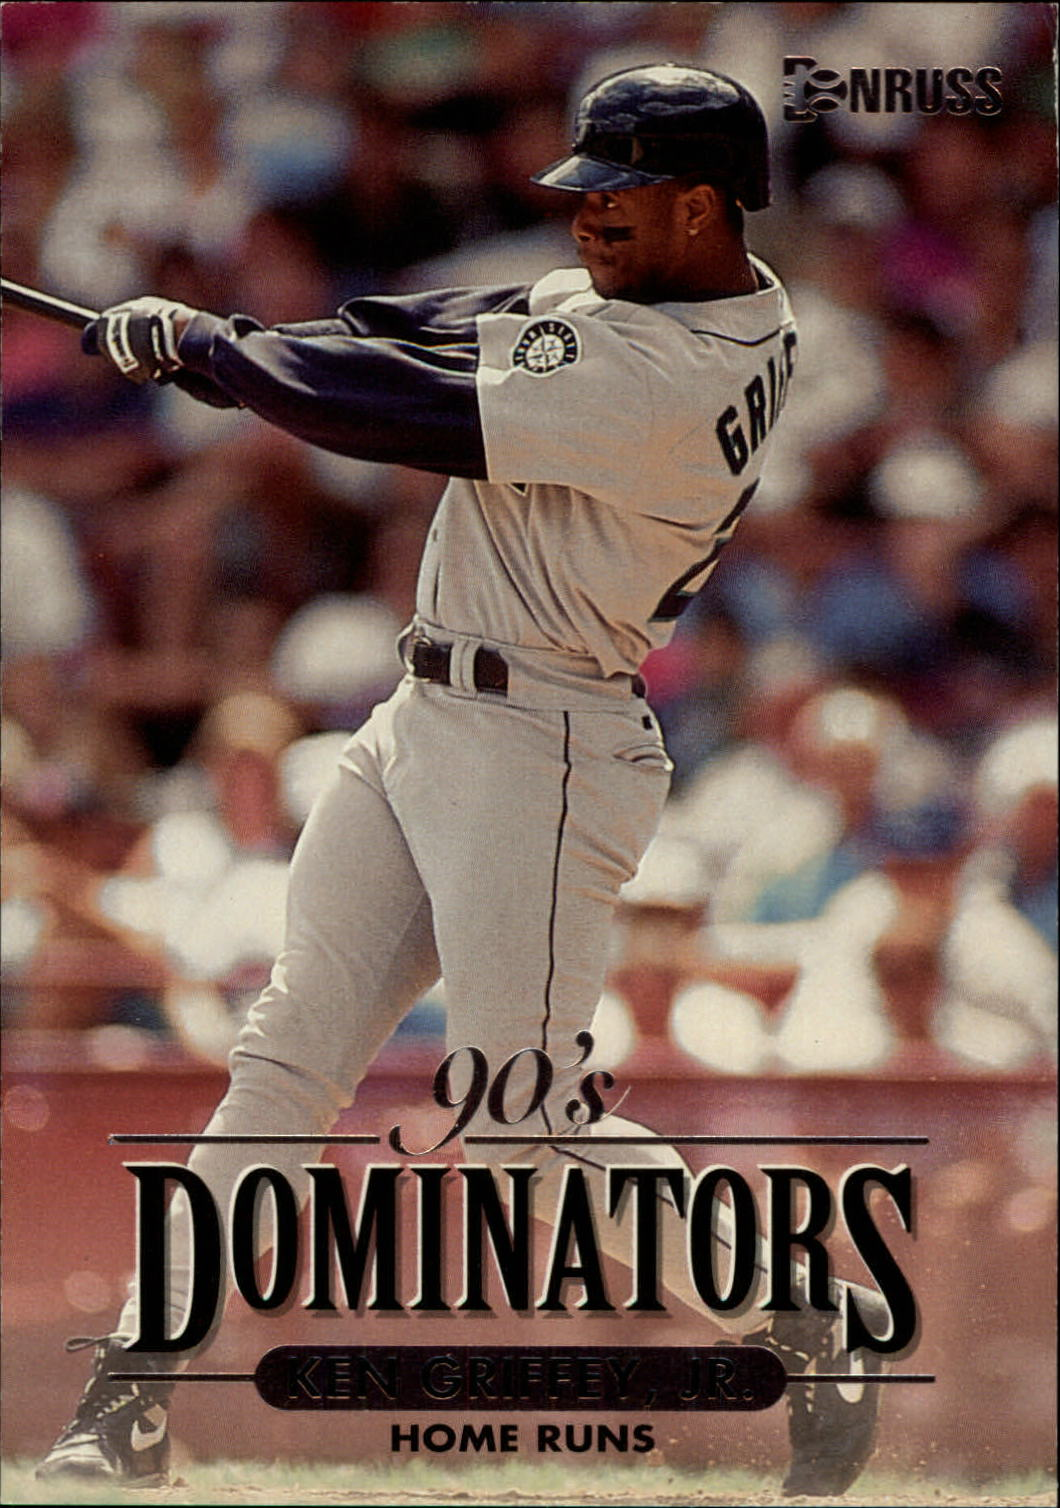 1994 Donruss Dominators Jumbos #A9 Ken Griffey Jr.